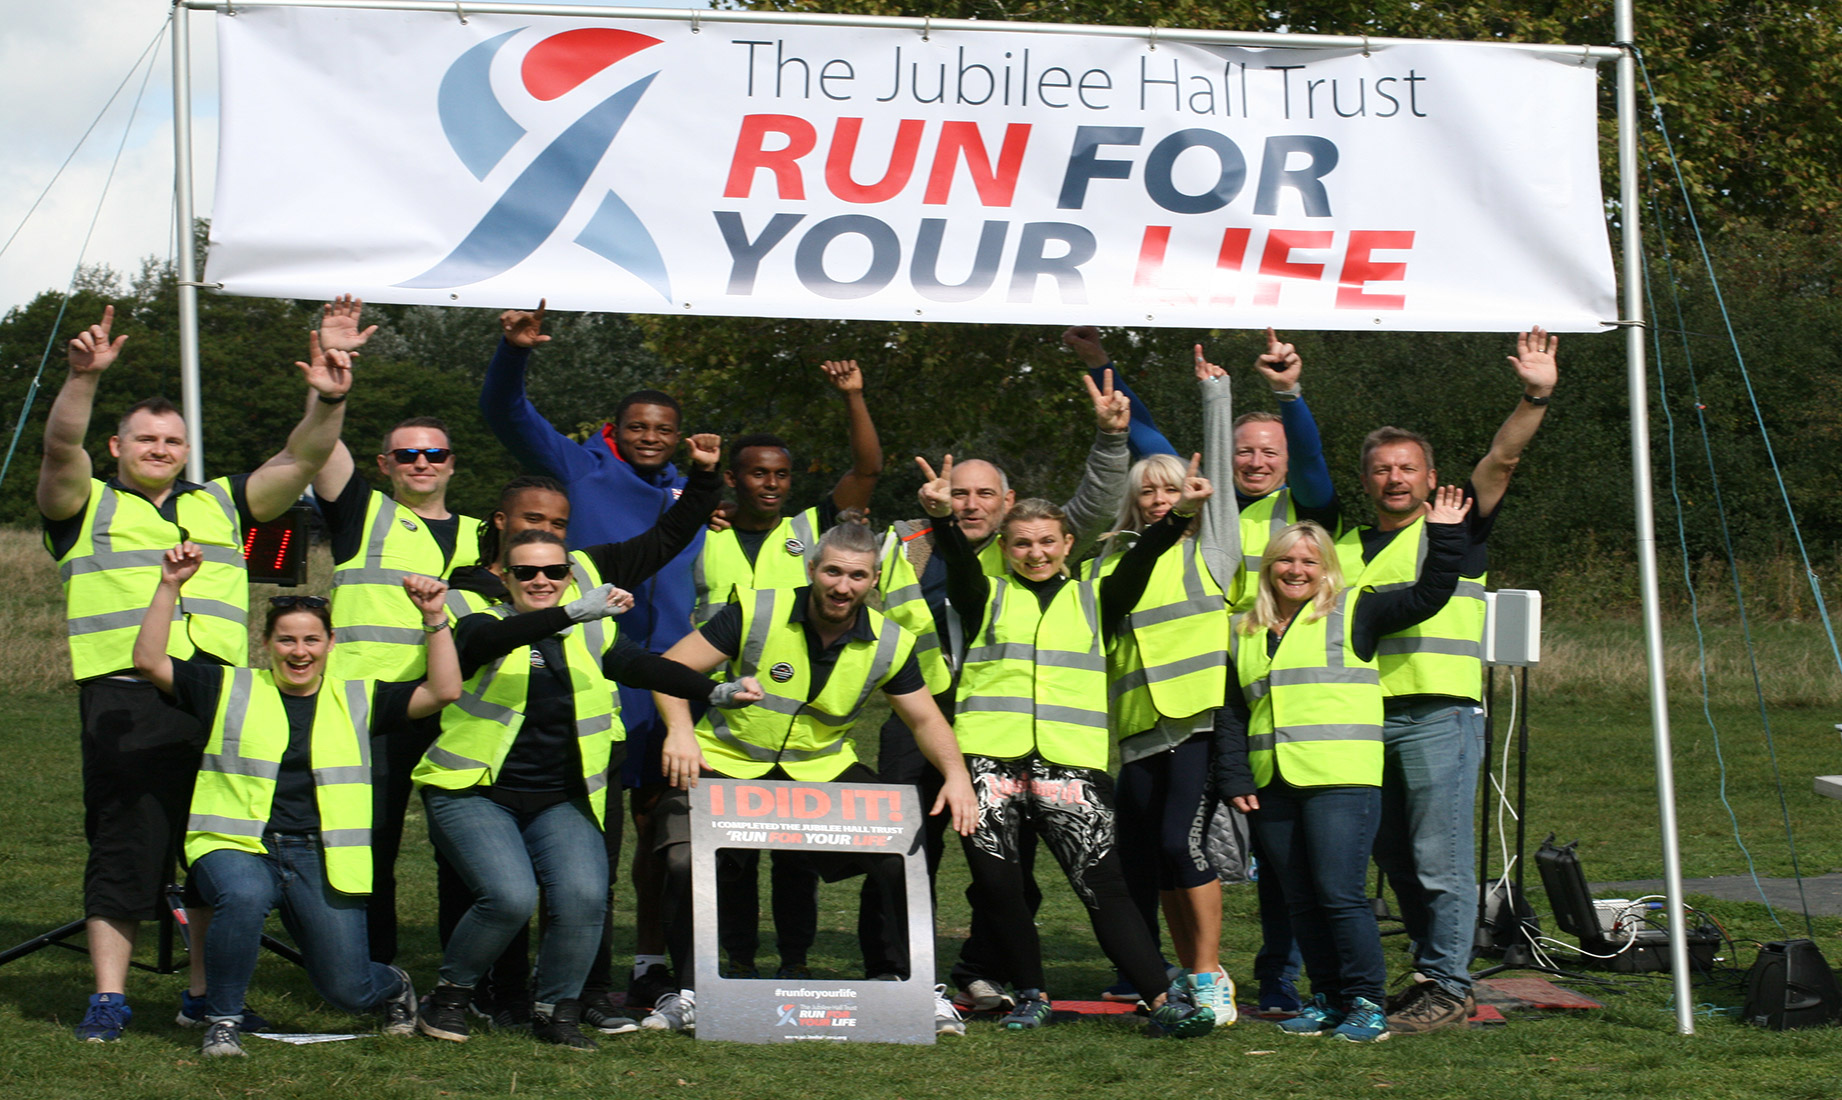 Jubilee Hall Trust named one of the UK's best small workplaces by Great Place to Work